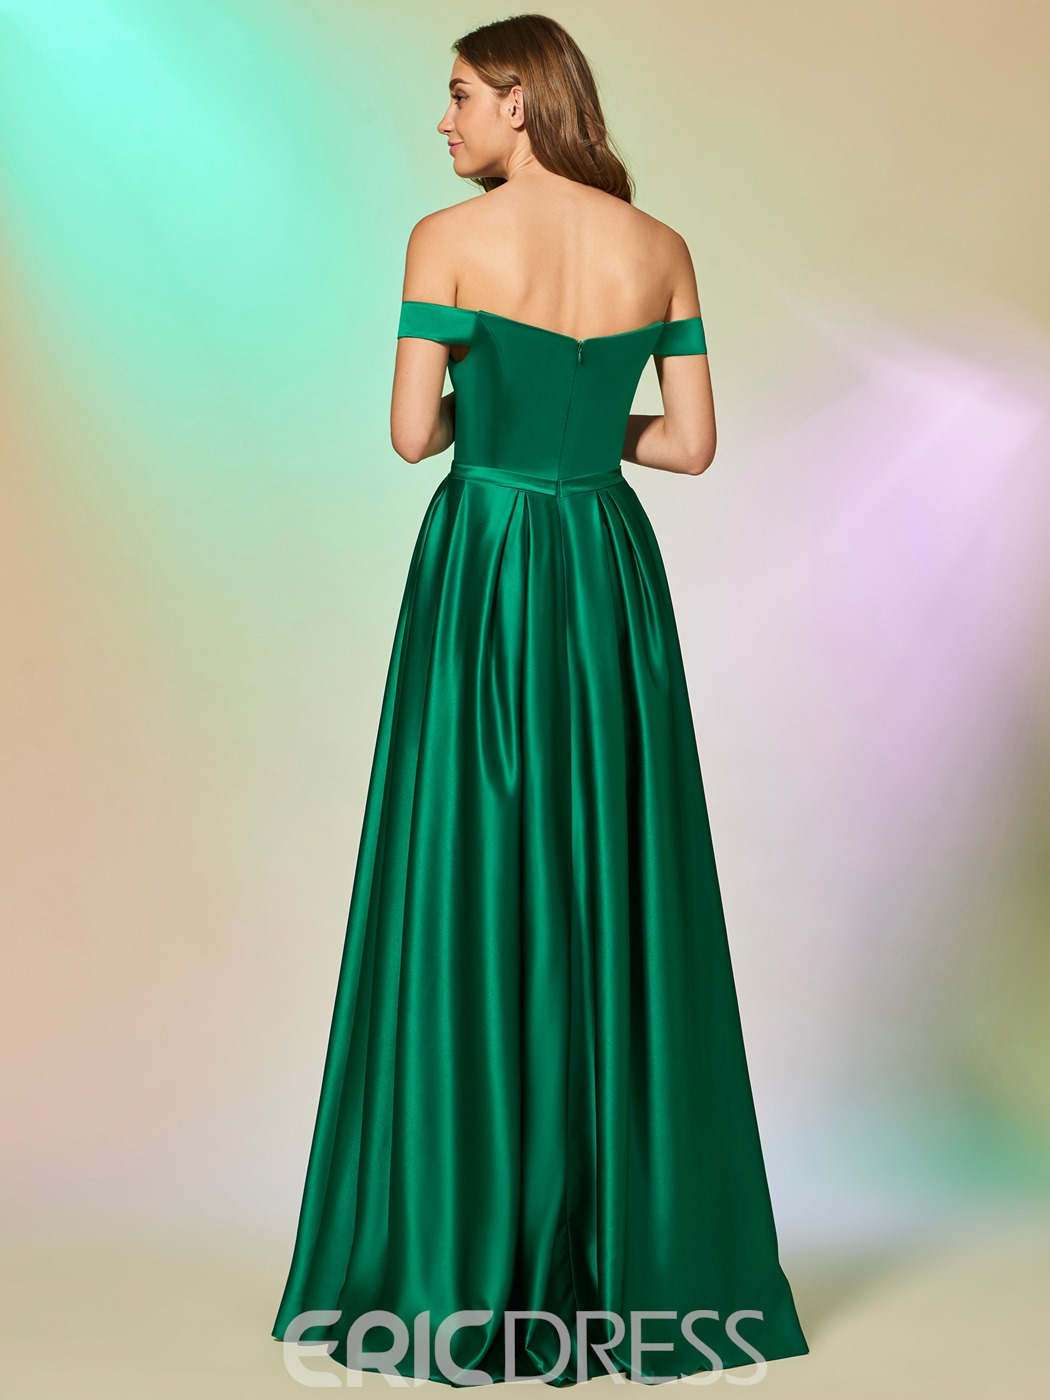 Ericdress A Line Off The Shoulder Long Prom Dress